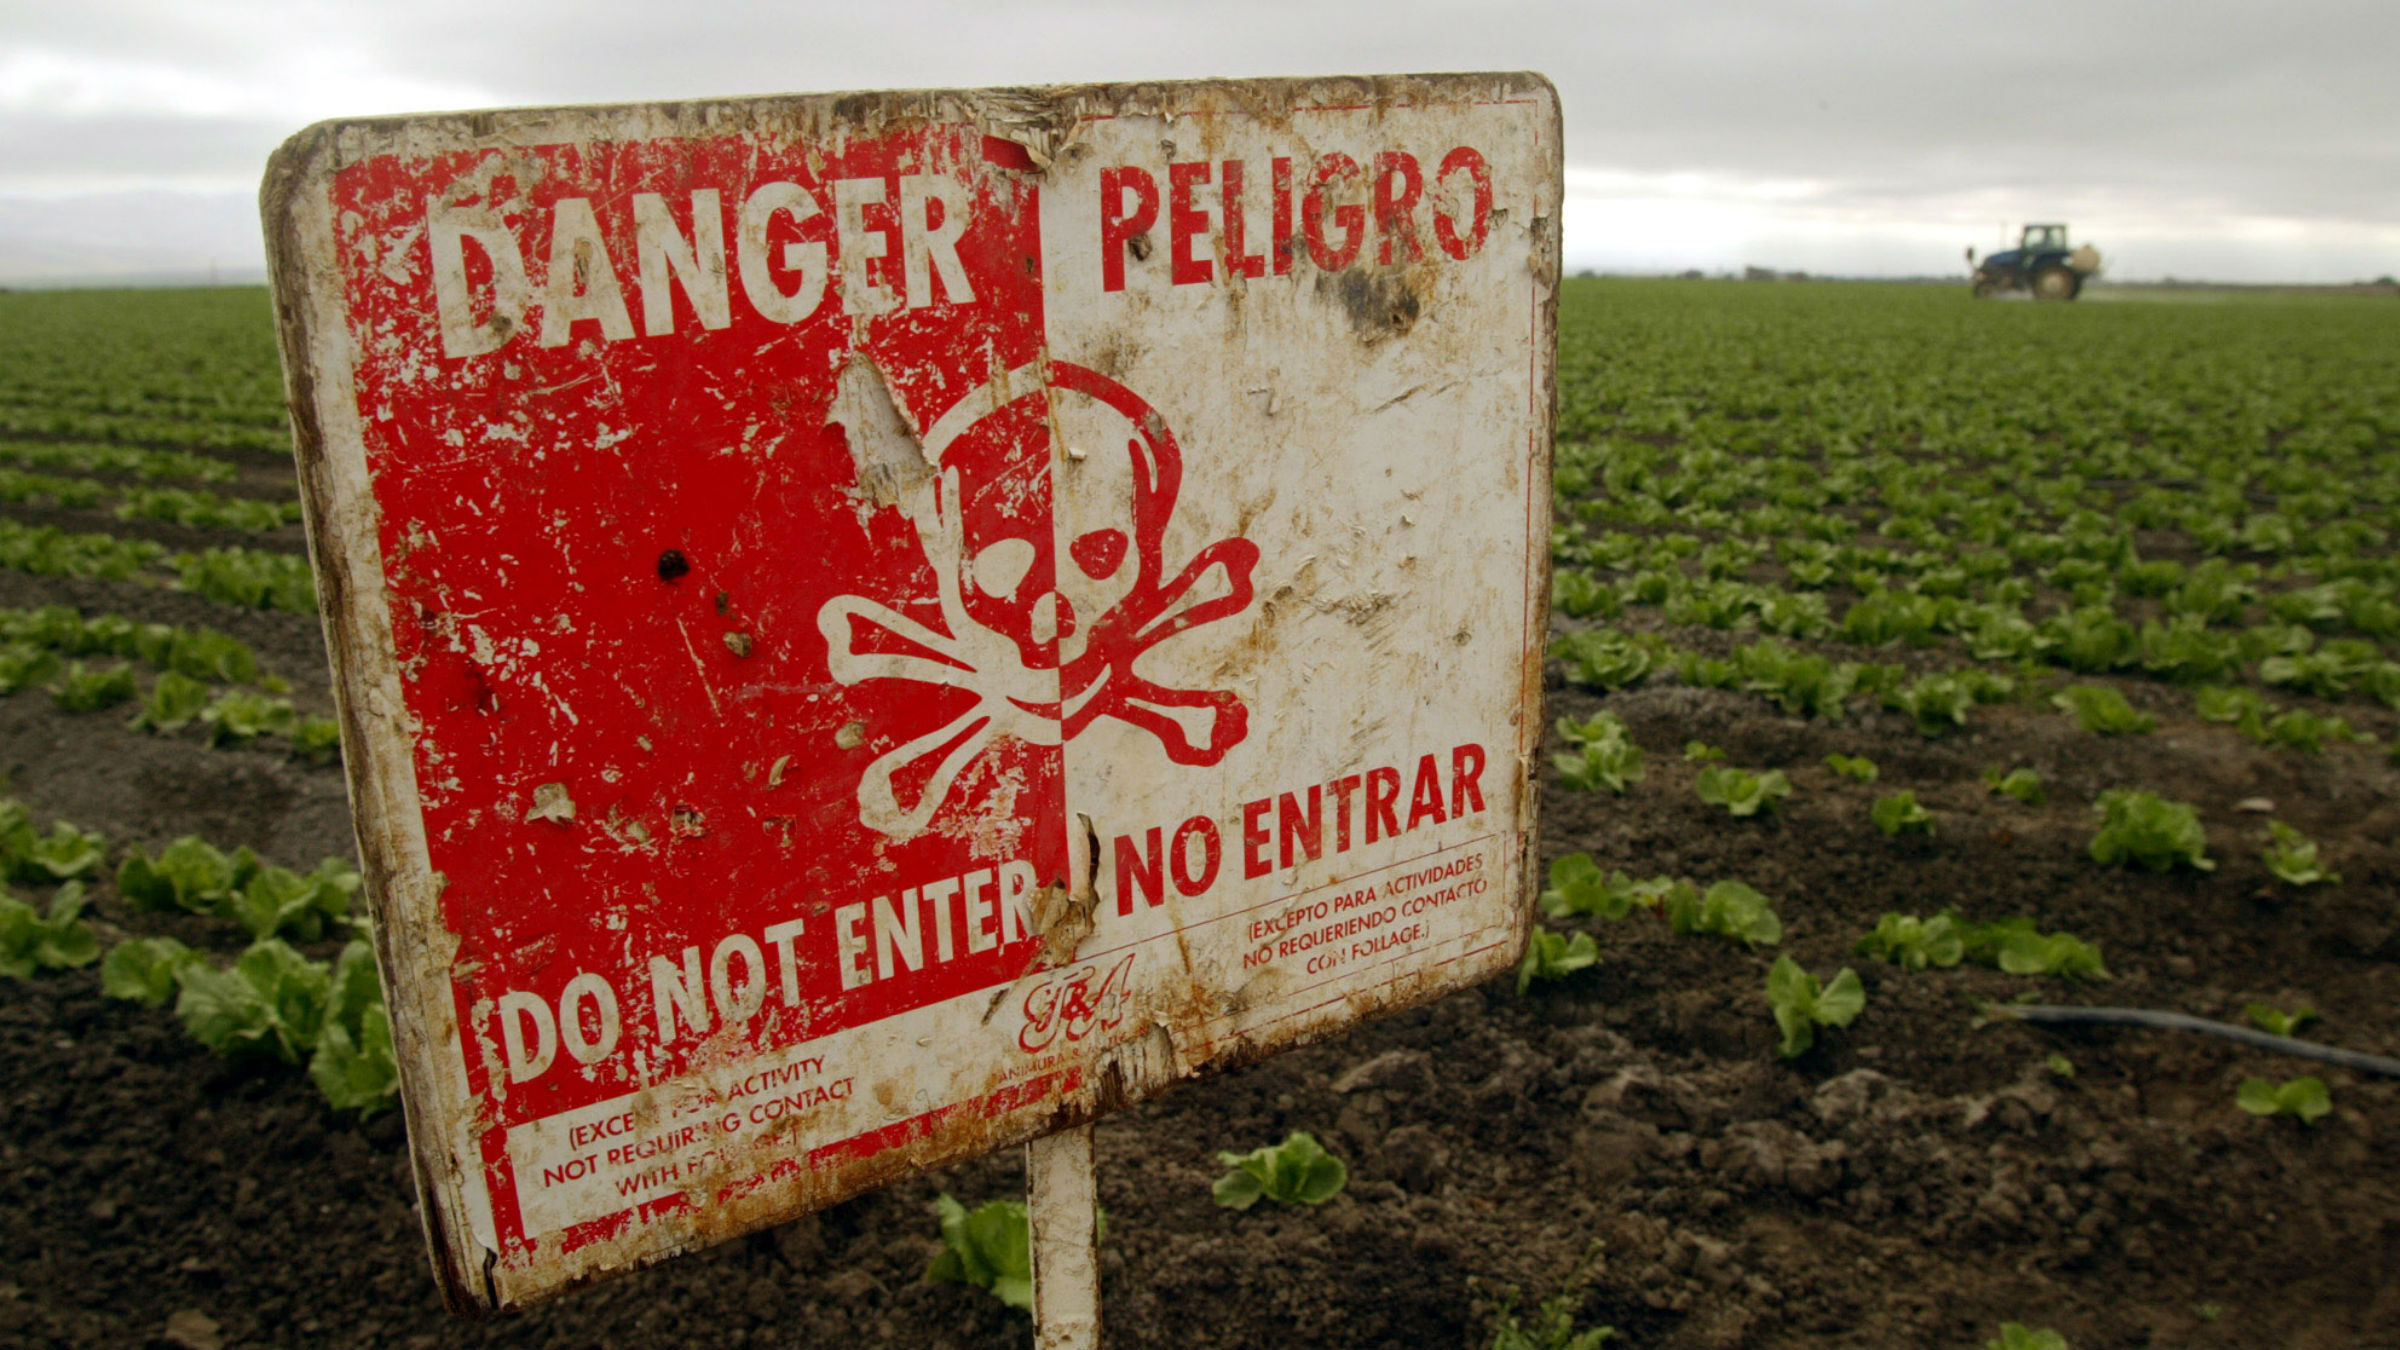 Pesticide-related sign warns people not to enter a farm field.